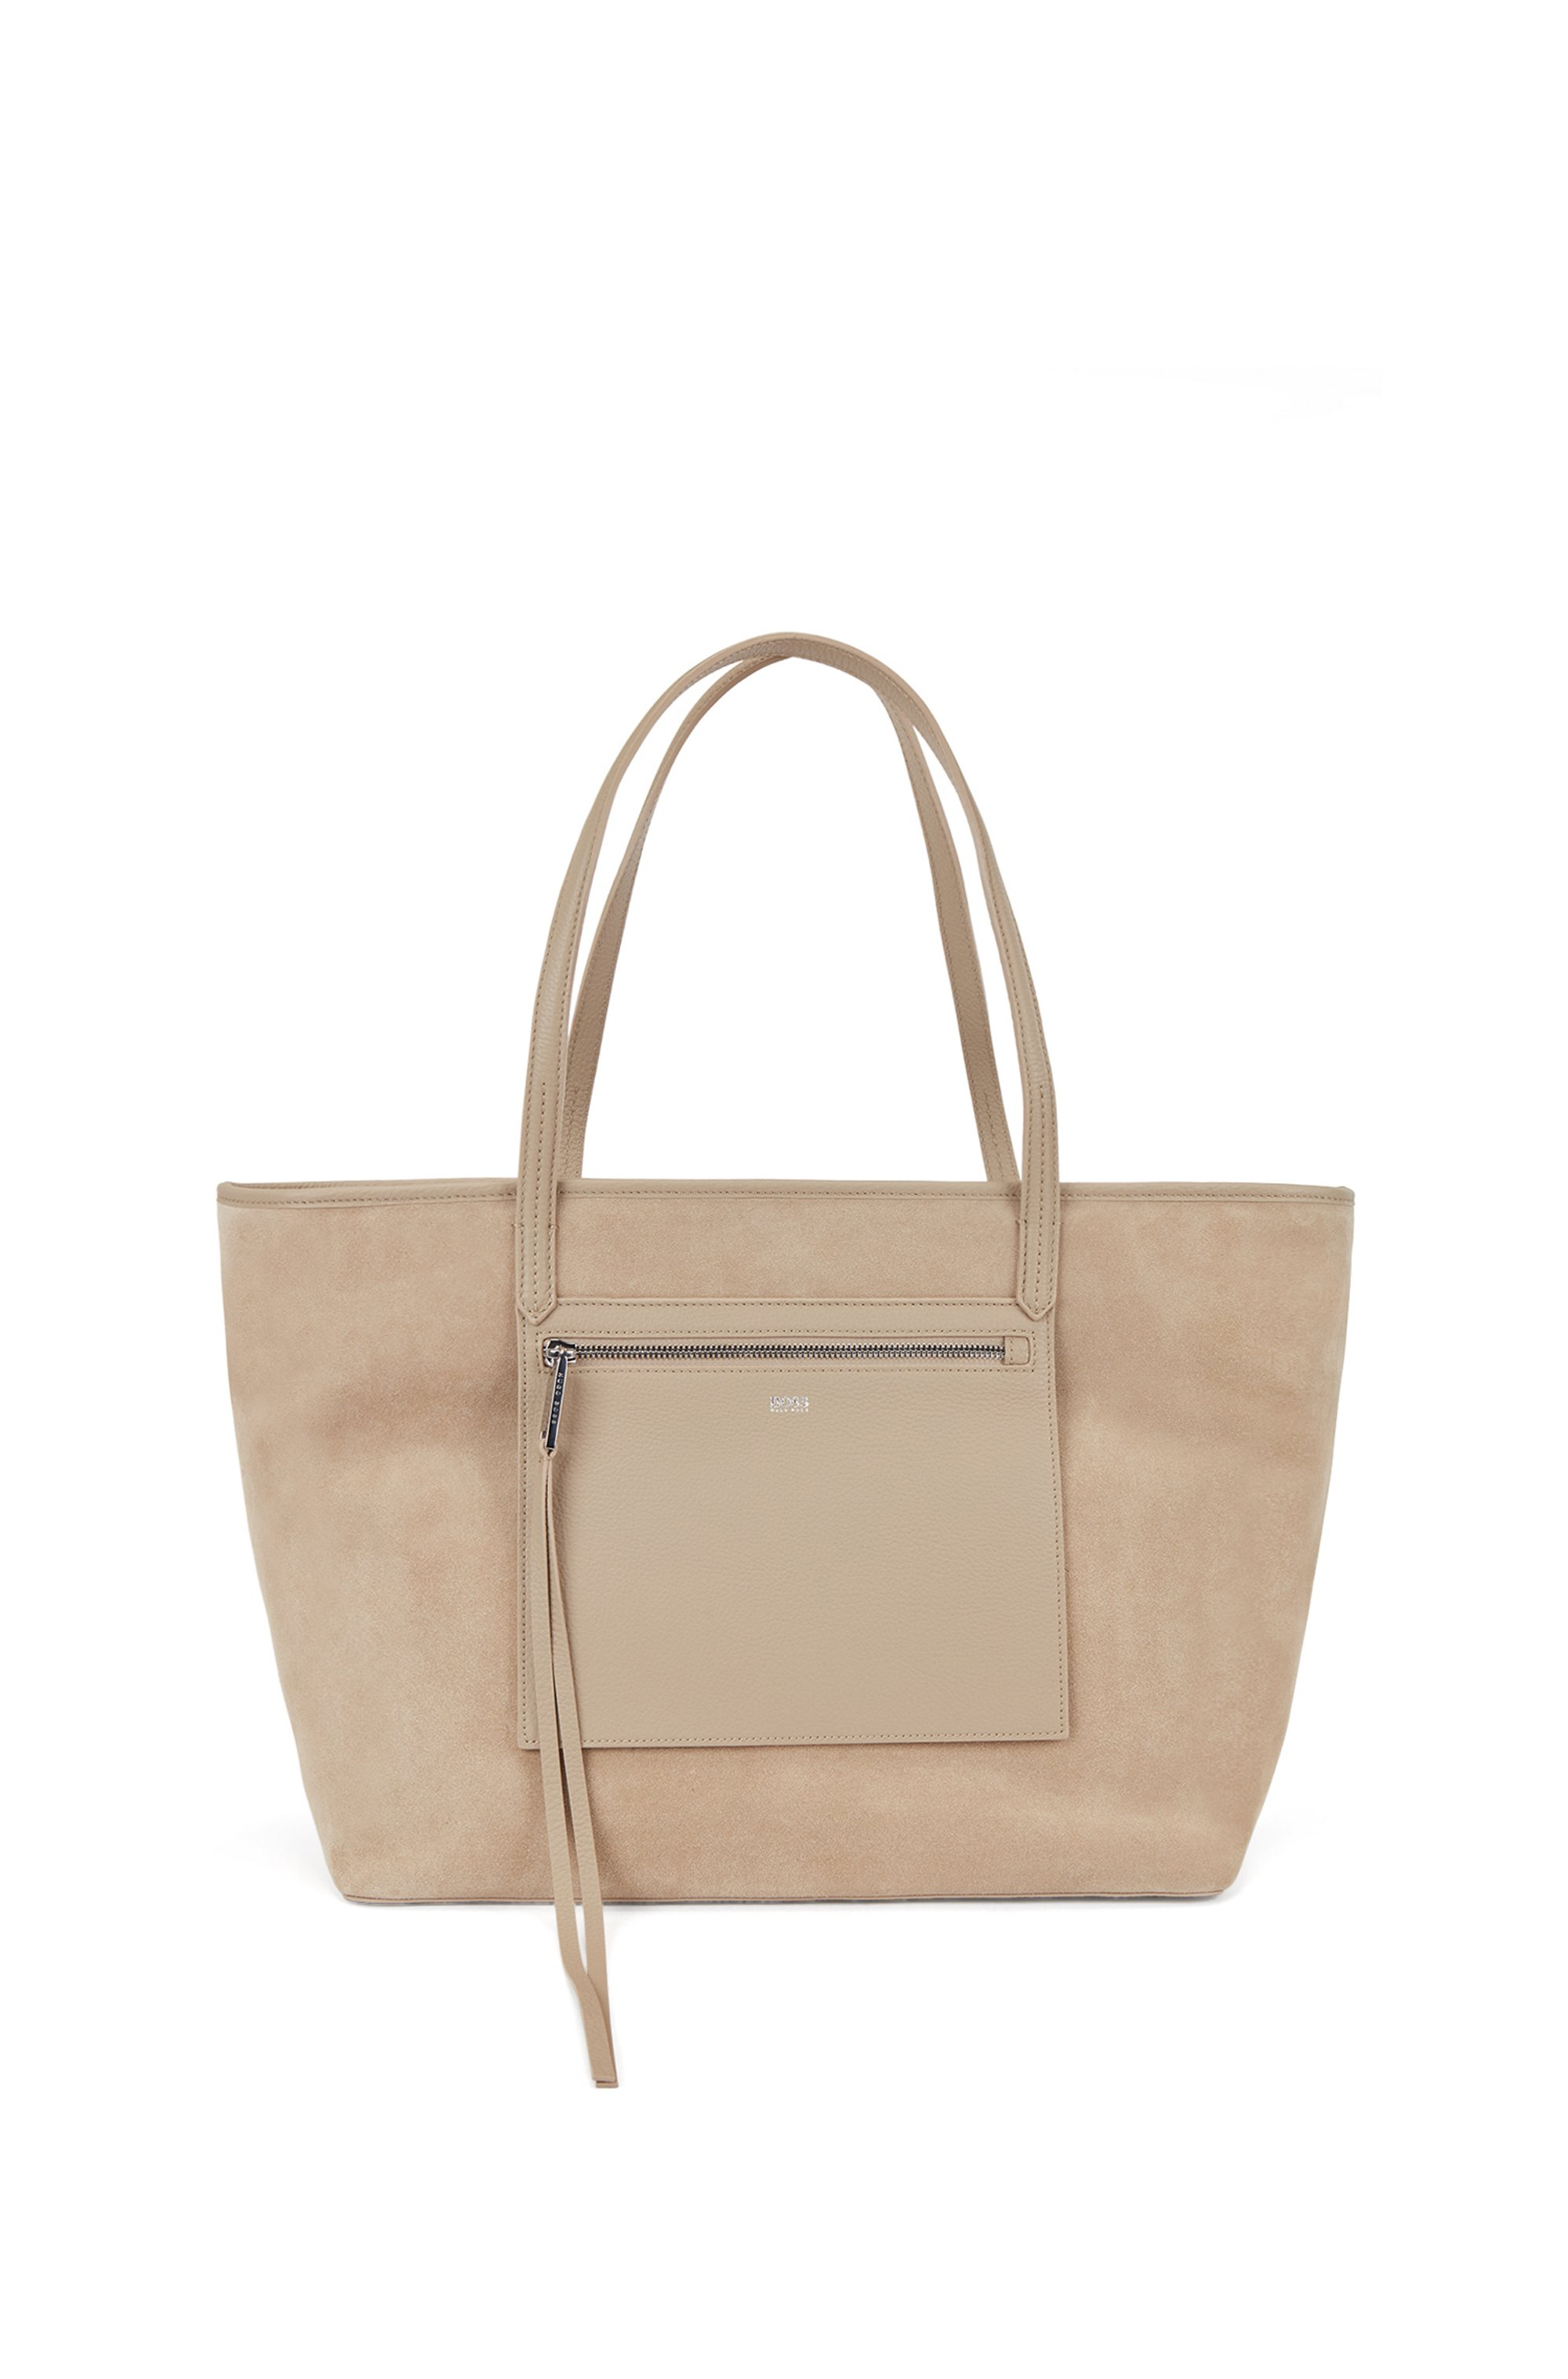 Shopper bag in suede and leather with external pocket, Beige